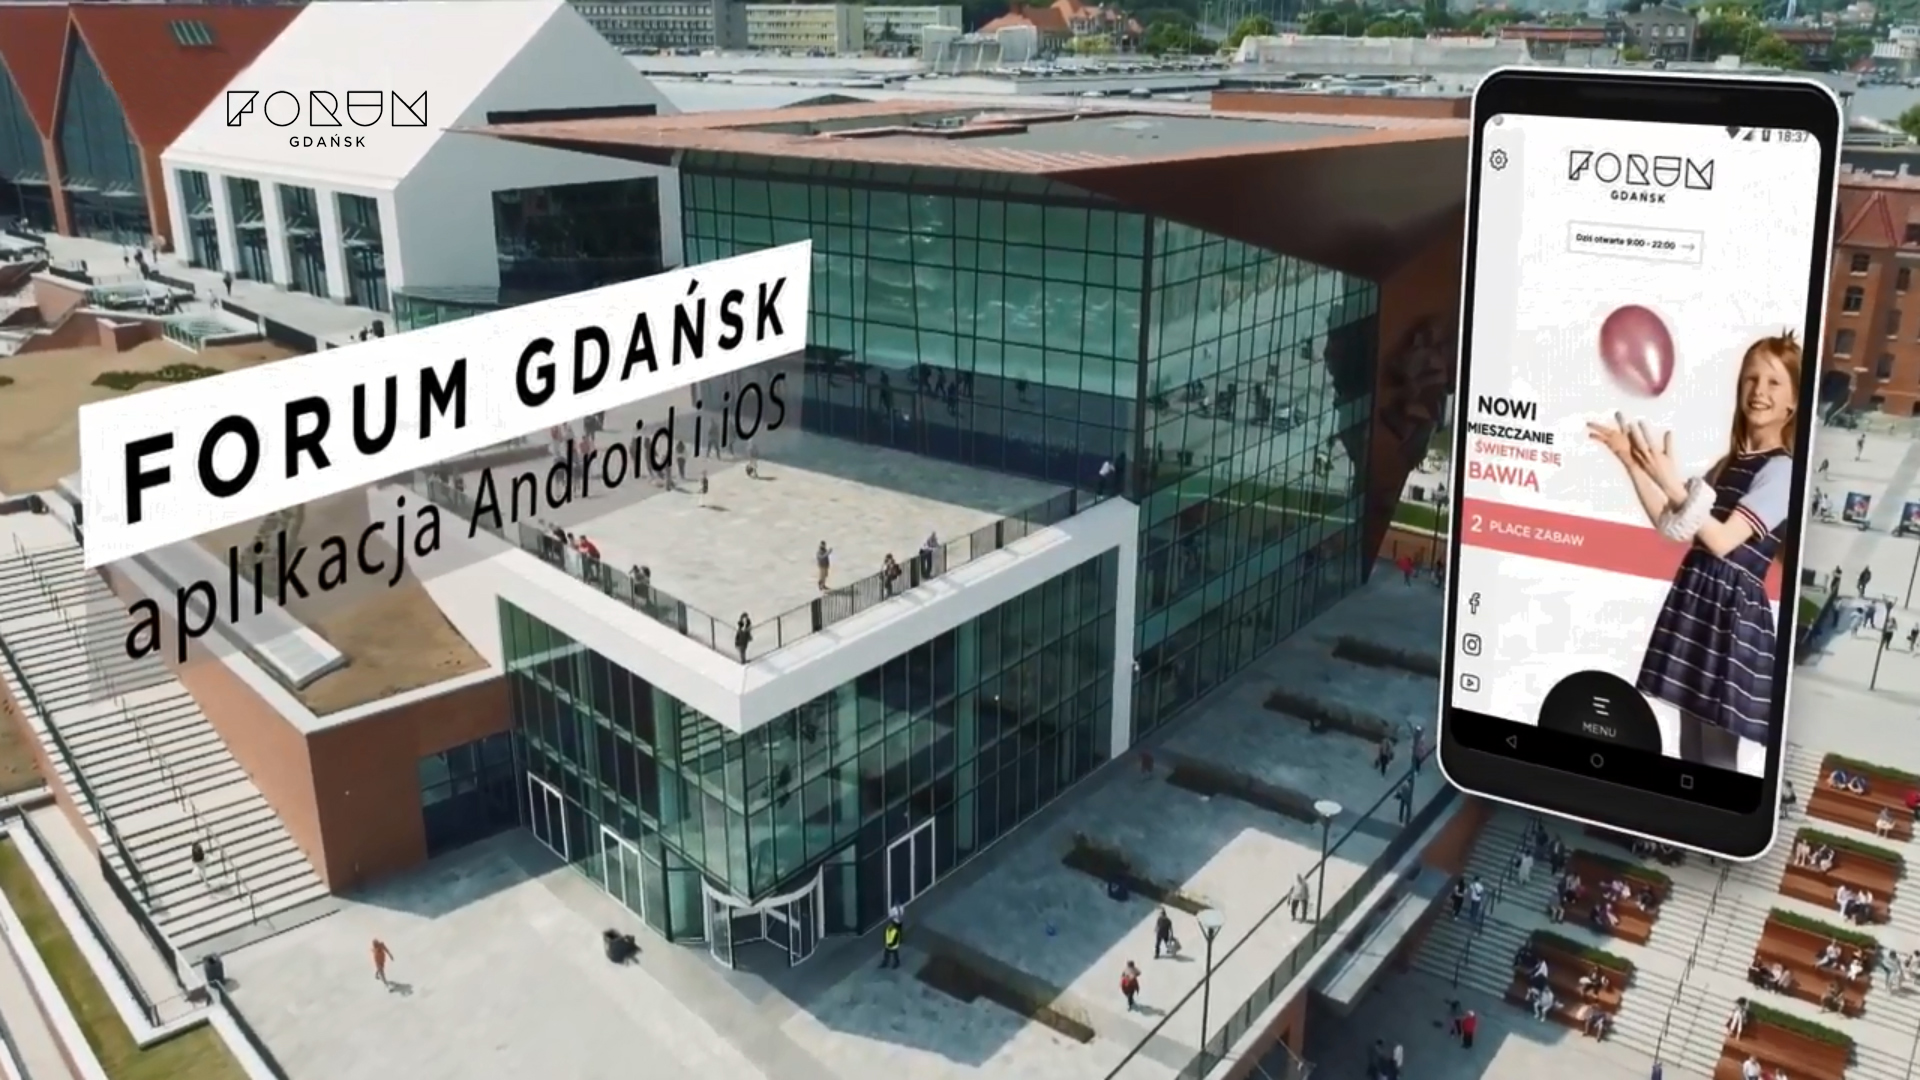 image of Forum Gdansk | Amistad Sp z o.o. Wins 2018 Best Shopping Mobile Application Mobile WebAward for Forum Gdansk - mobile app